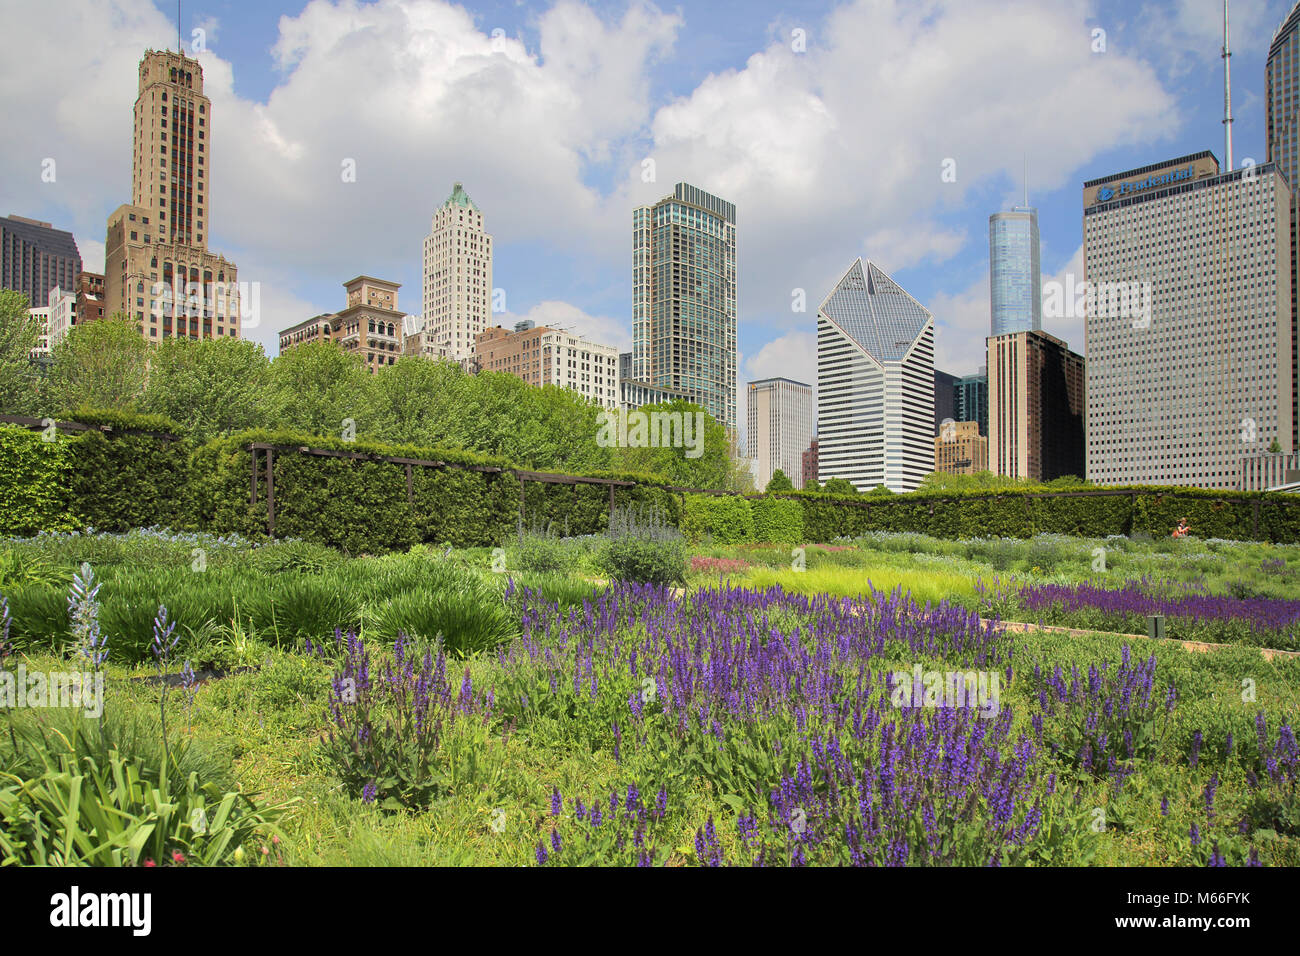 the maggie daley park chicago Illinois - Stock Image